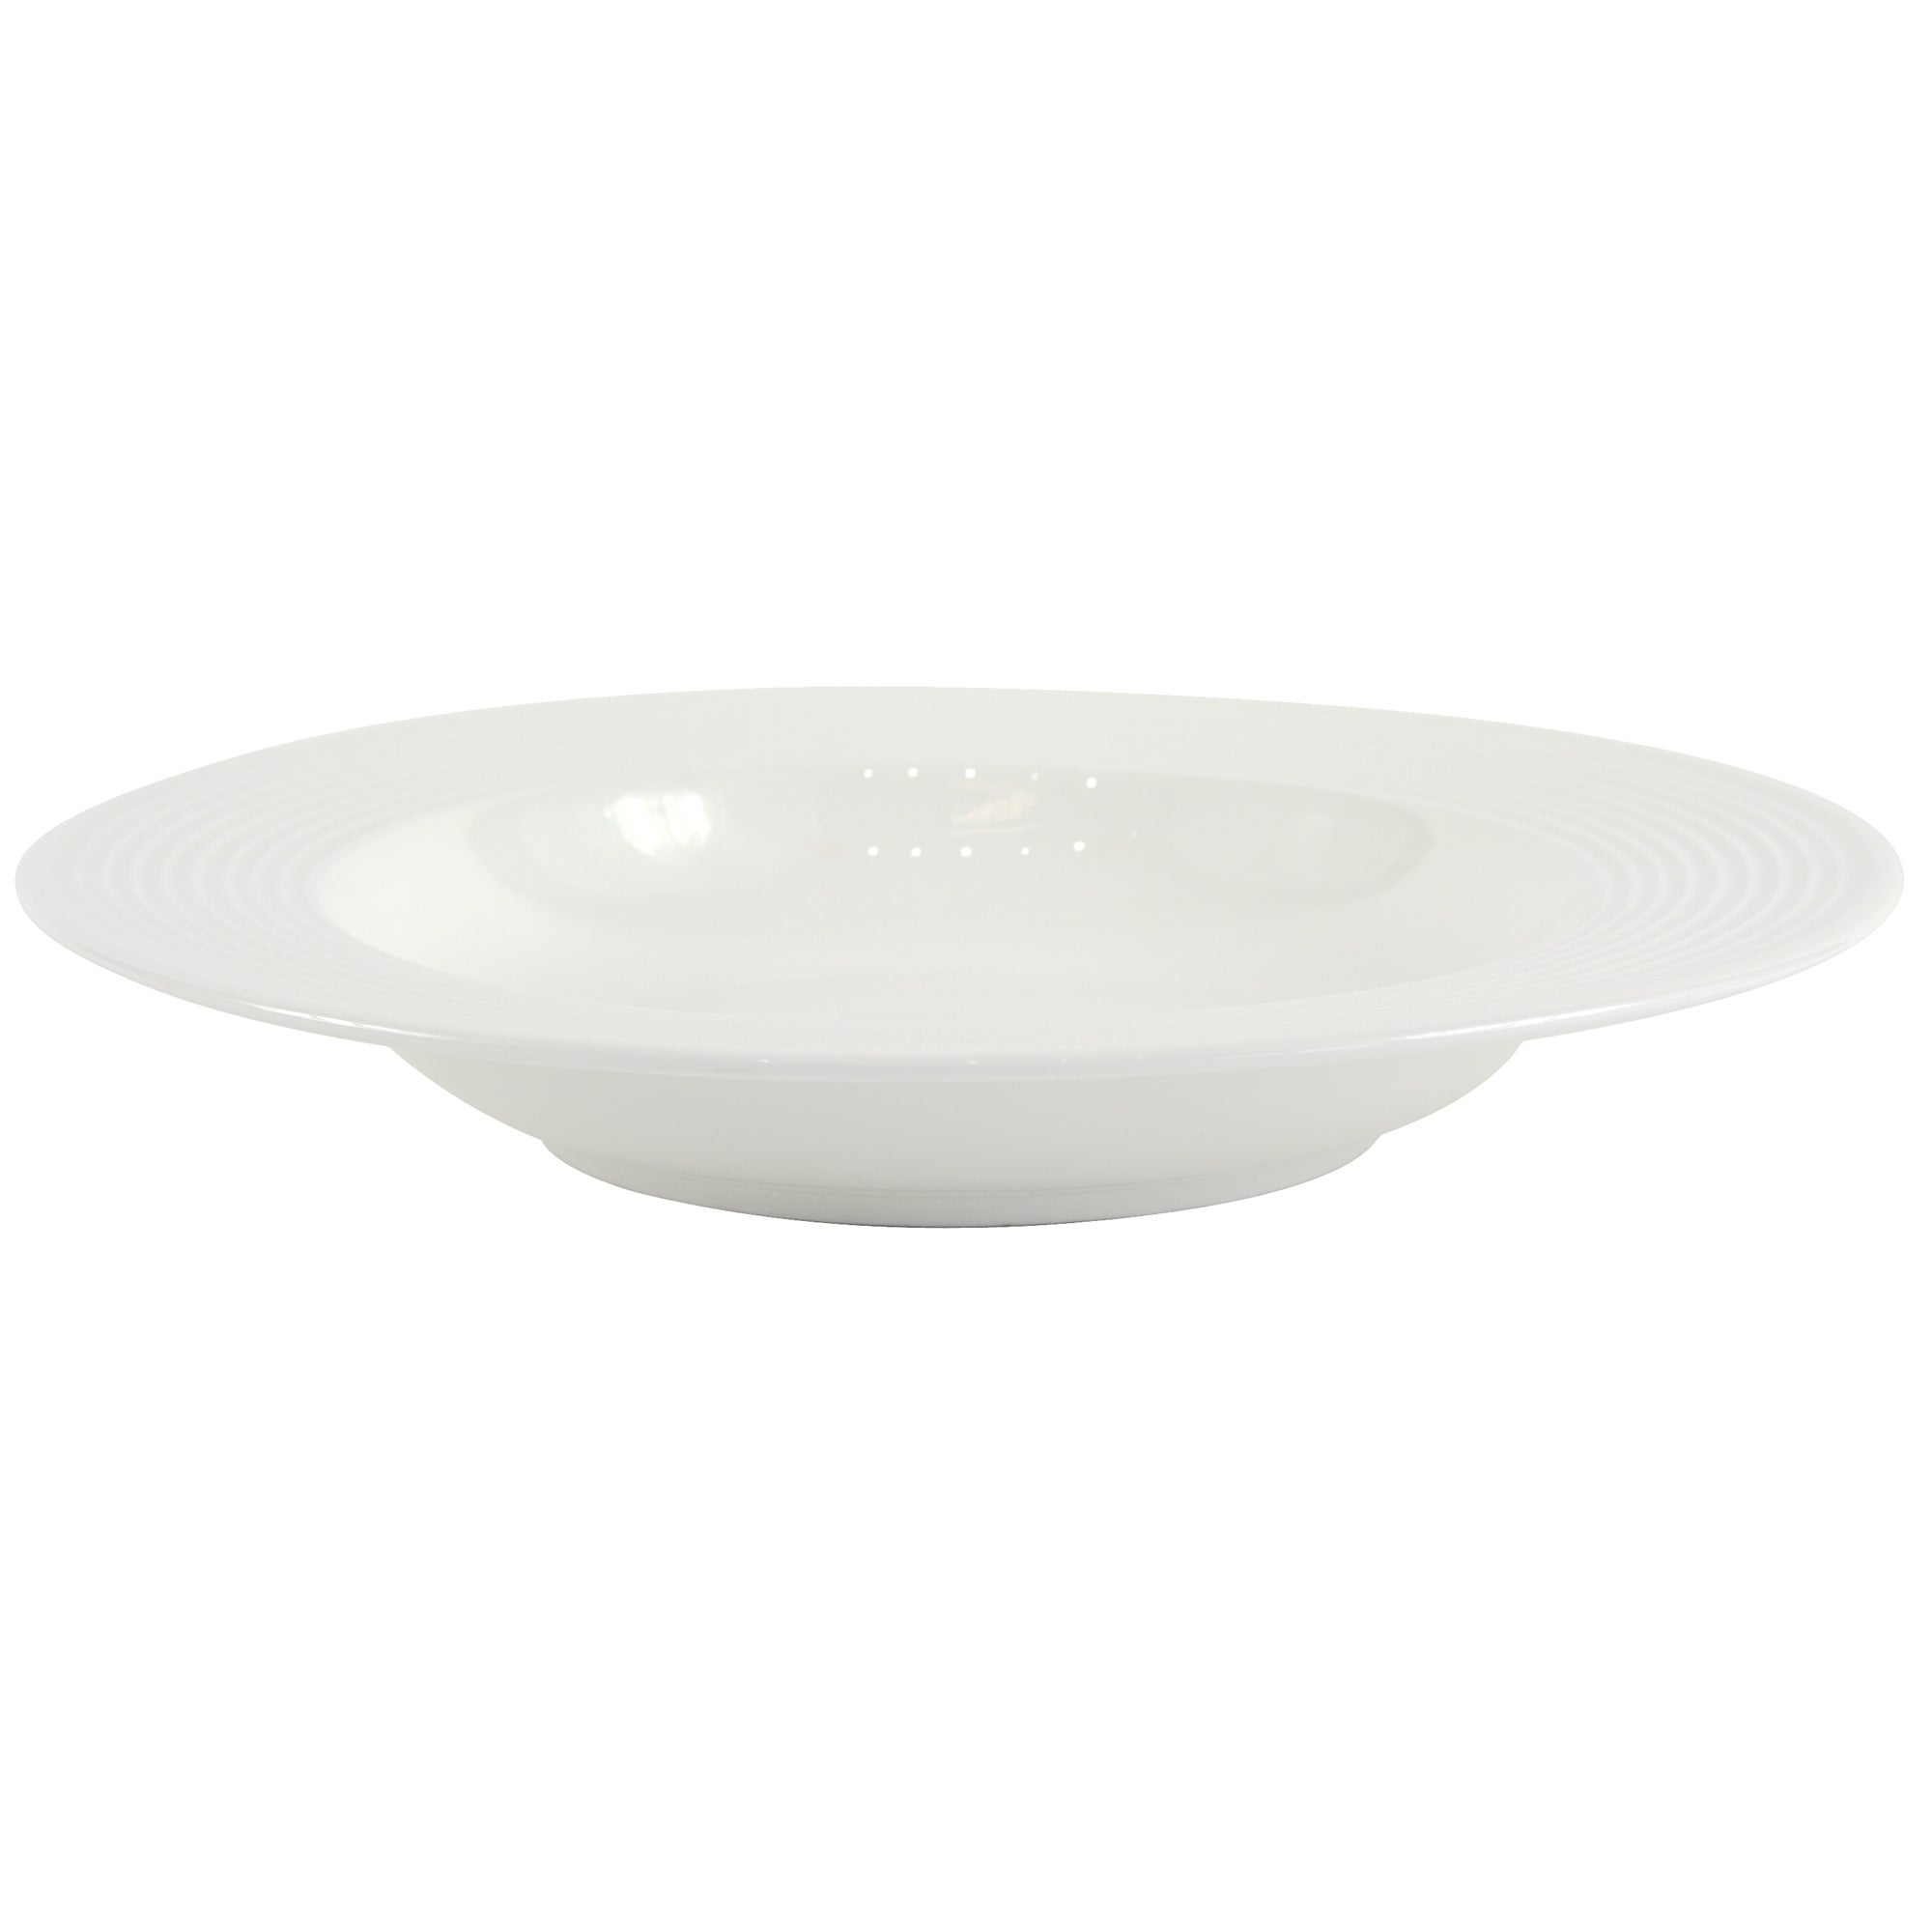 Dorma Windsor Soup Plate